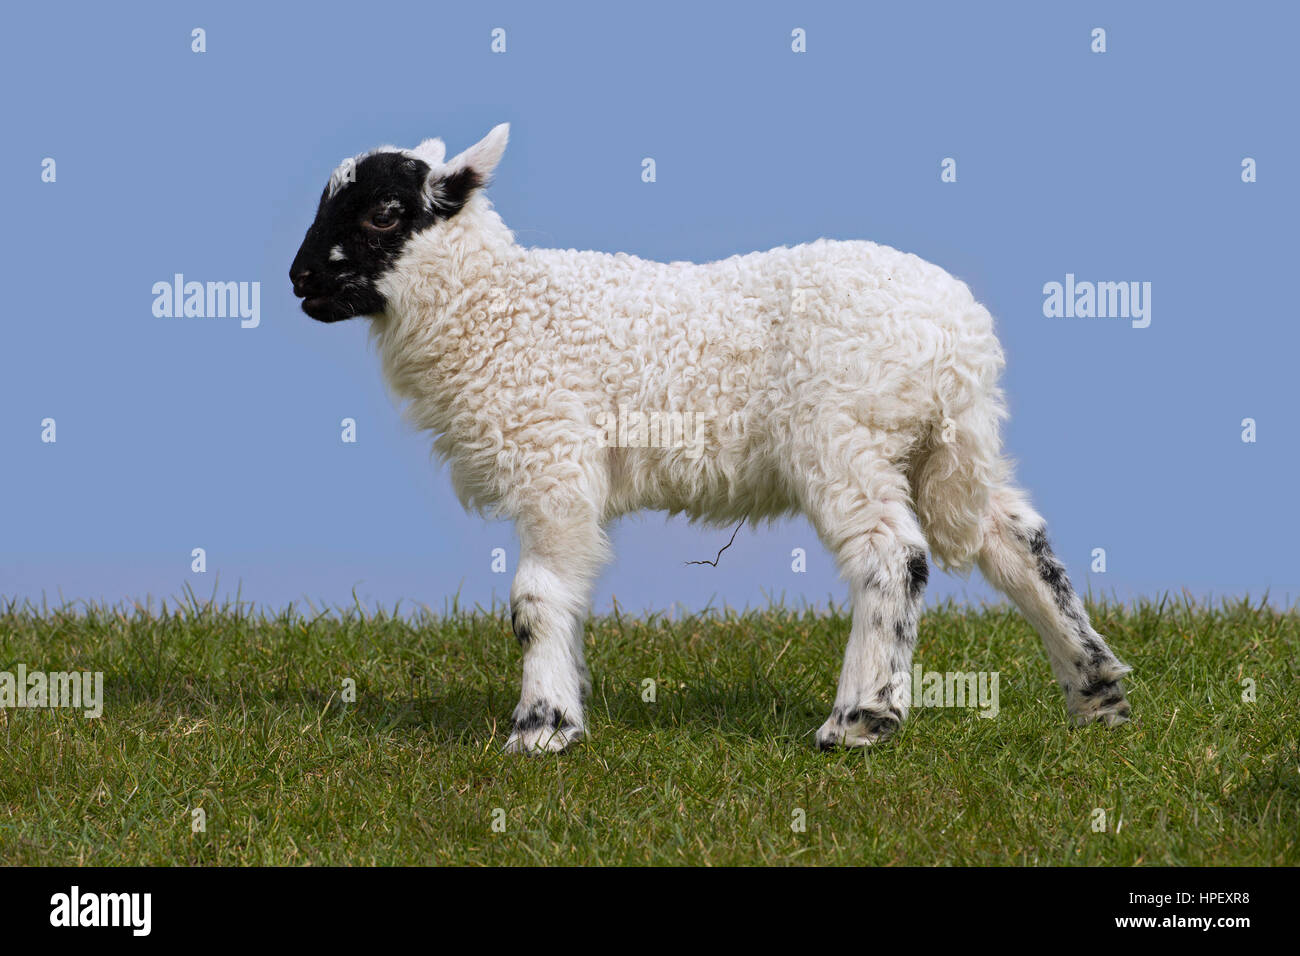 Black and white domestic sheep lamb in meadow, North Frisia, Schleswig-Holstein, Germany - Stock Image